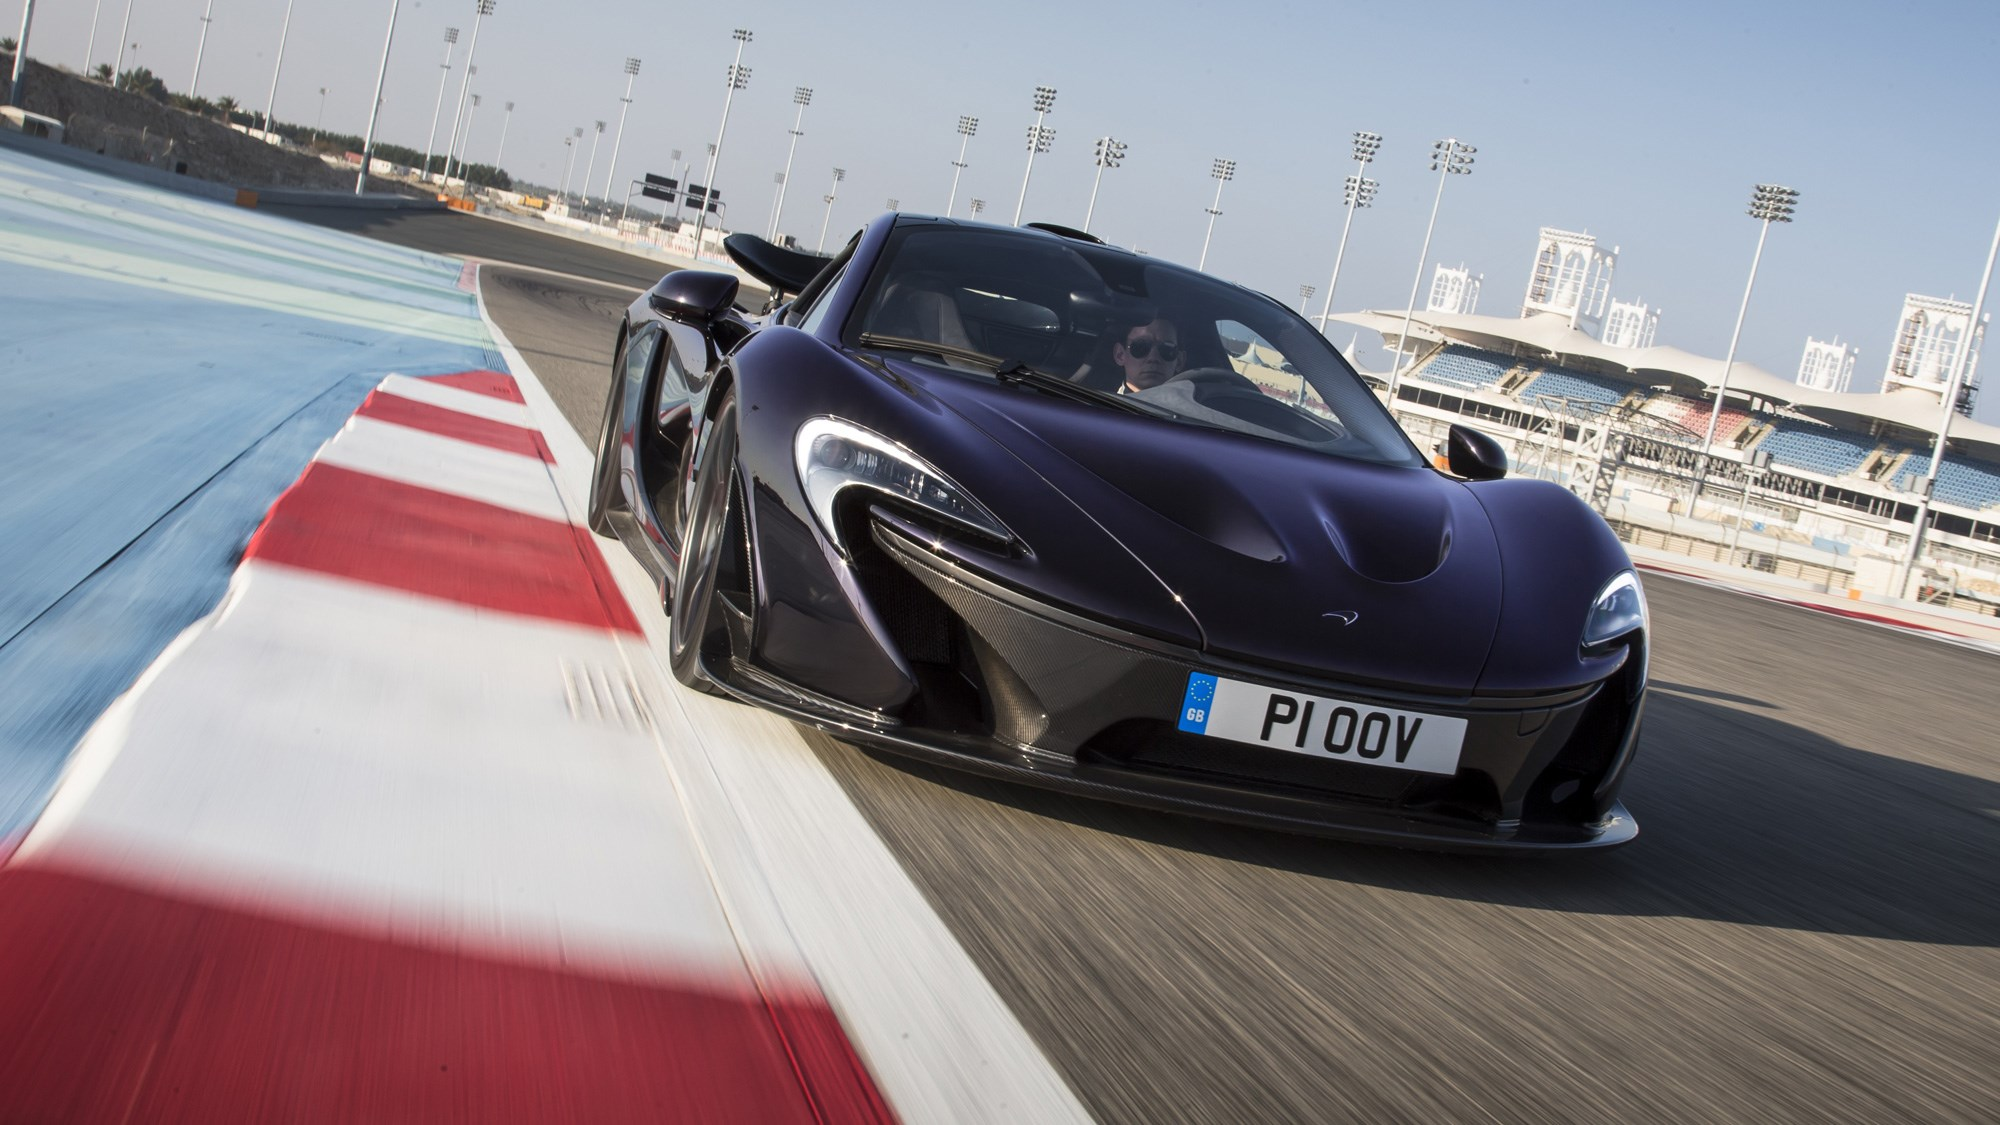 McLaren P1 review, Bahrain, black, front view, driving on circuit